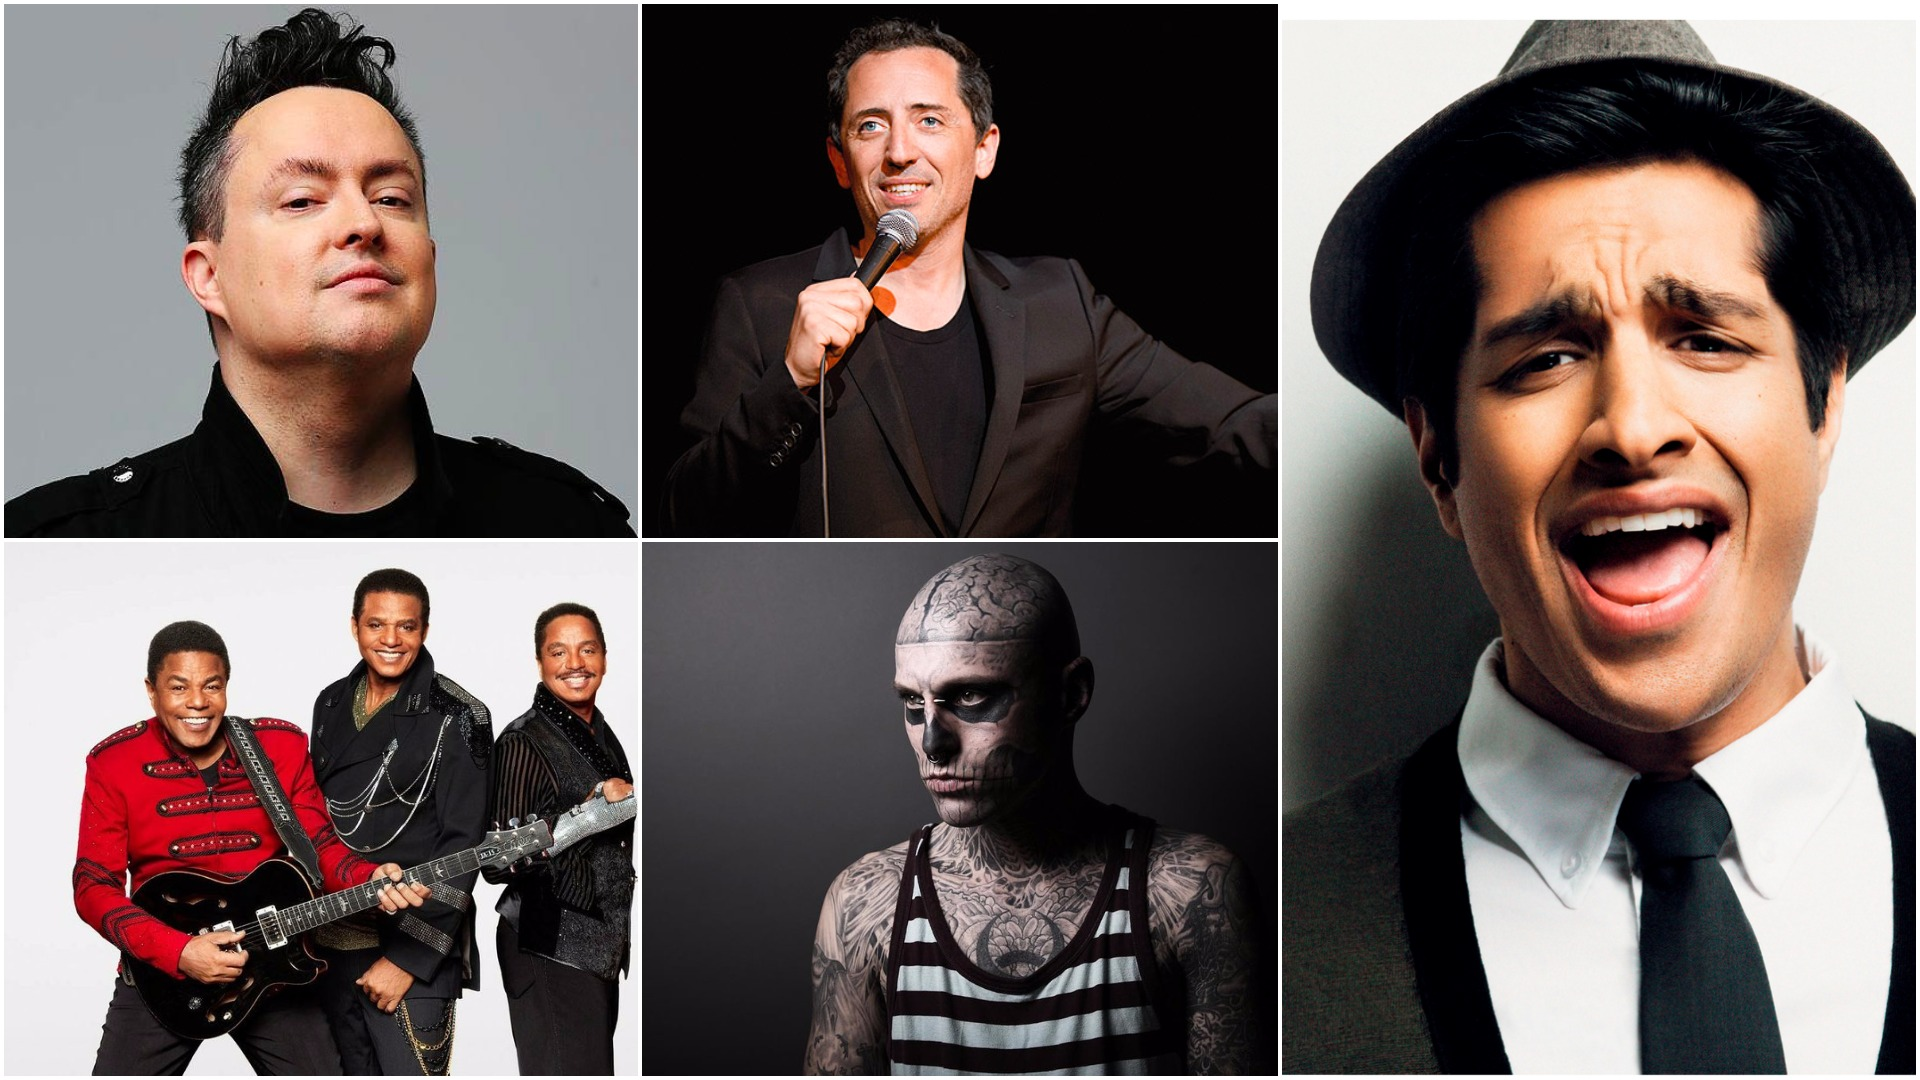 After-partys Juste pour Rire avec Sugar Sammy, Gad Elmaleh, Mike Ward, Zombie Boy et The Jacksons